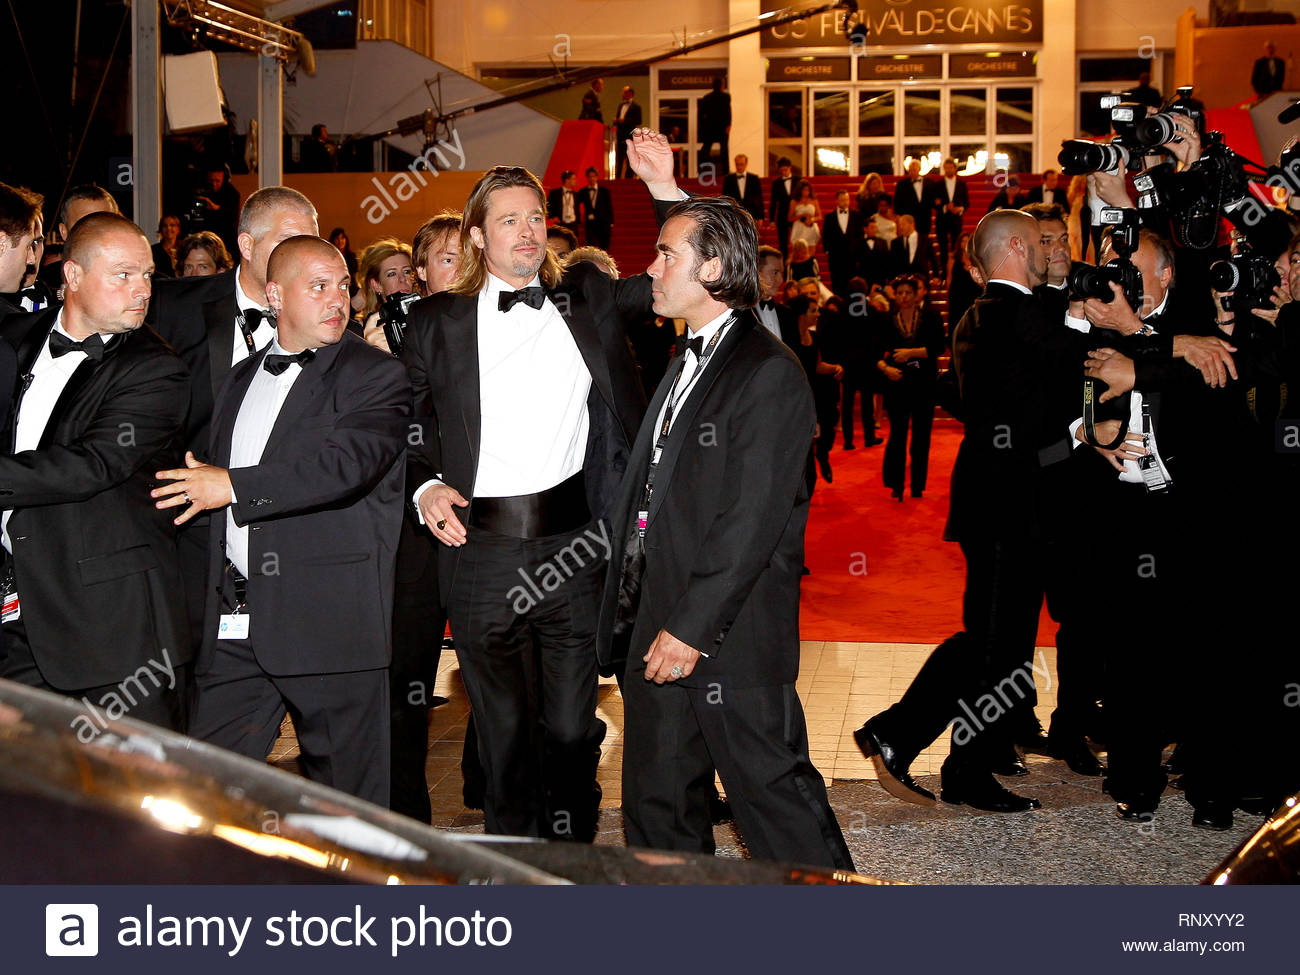 [USA ONLY] Cannes, France - Actor Brad Pitt waves to his fans after attending the premiere of ...